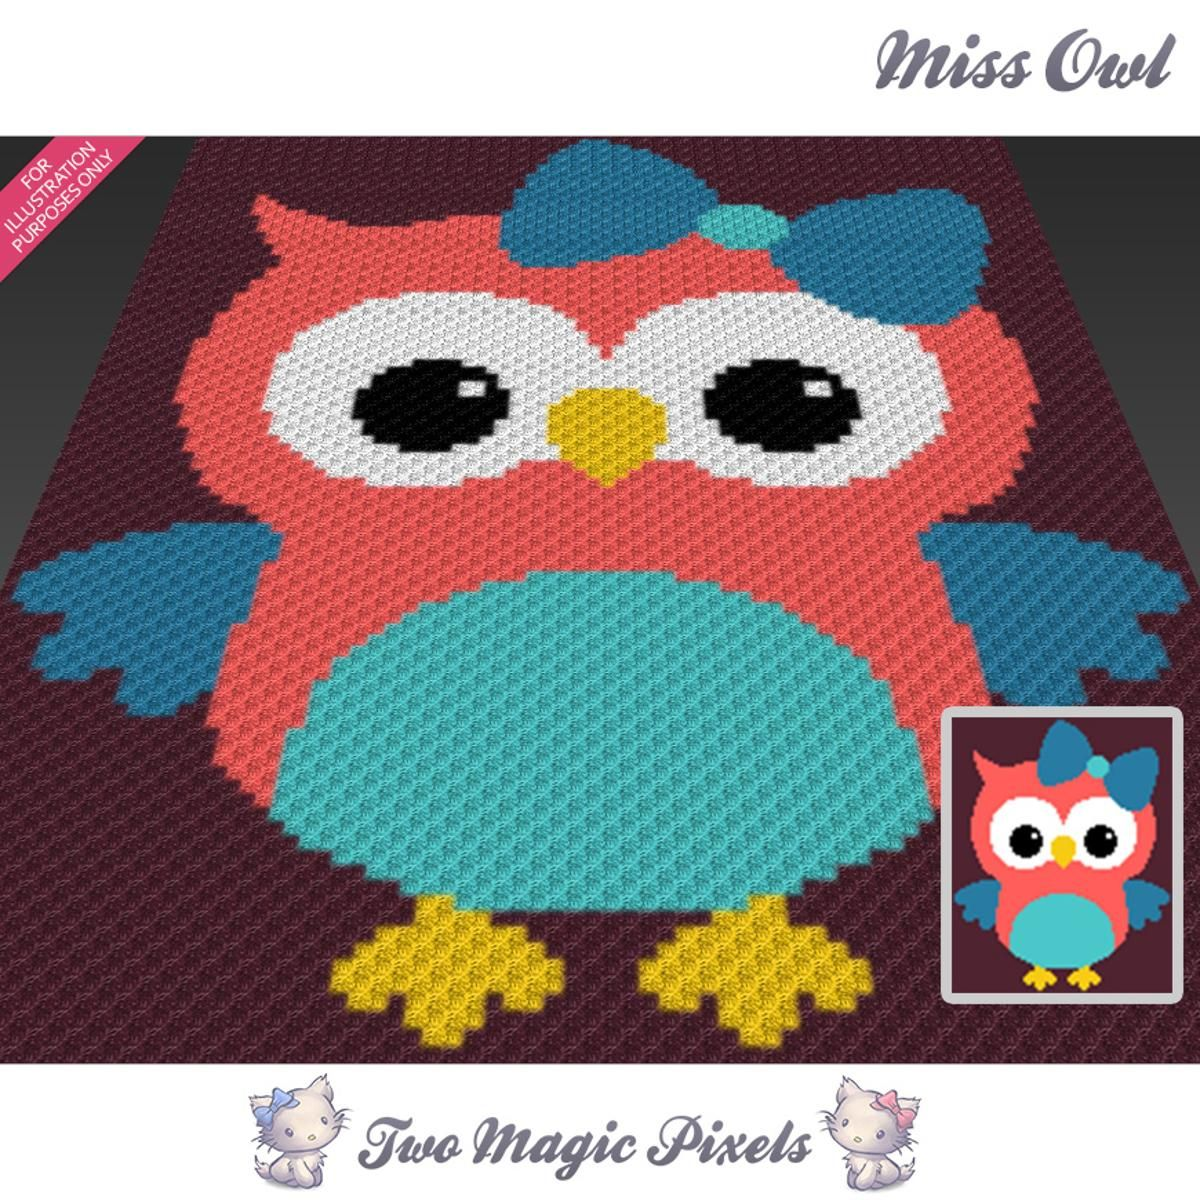 Miss owl c2c crochet graph cross stitch owl and stitch miss owl c2c crochet graph crochet blanket patternscrocheting bankloansurffo Image collections